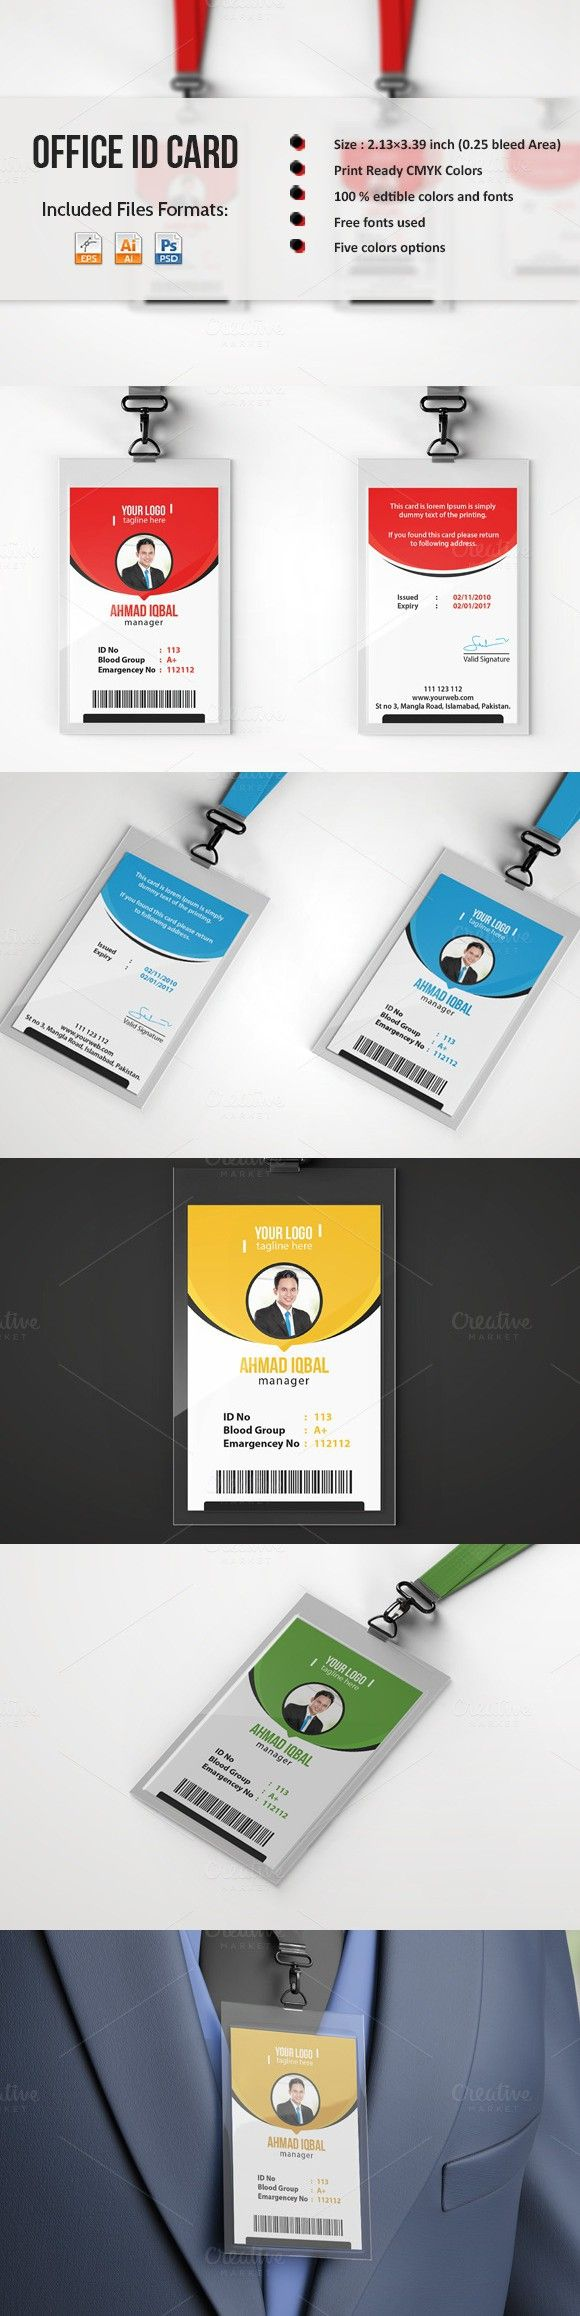 14 best id cards images on Pinterest | Business cards, Visit cards ...